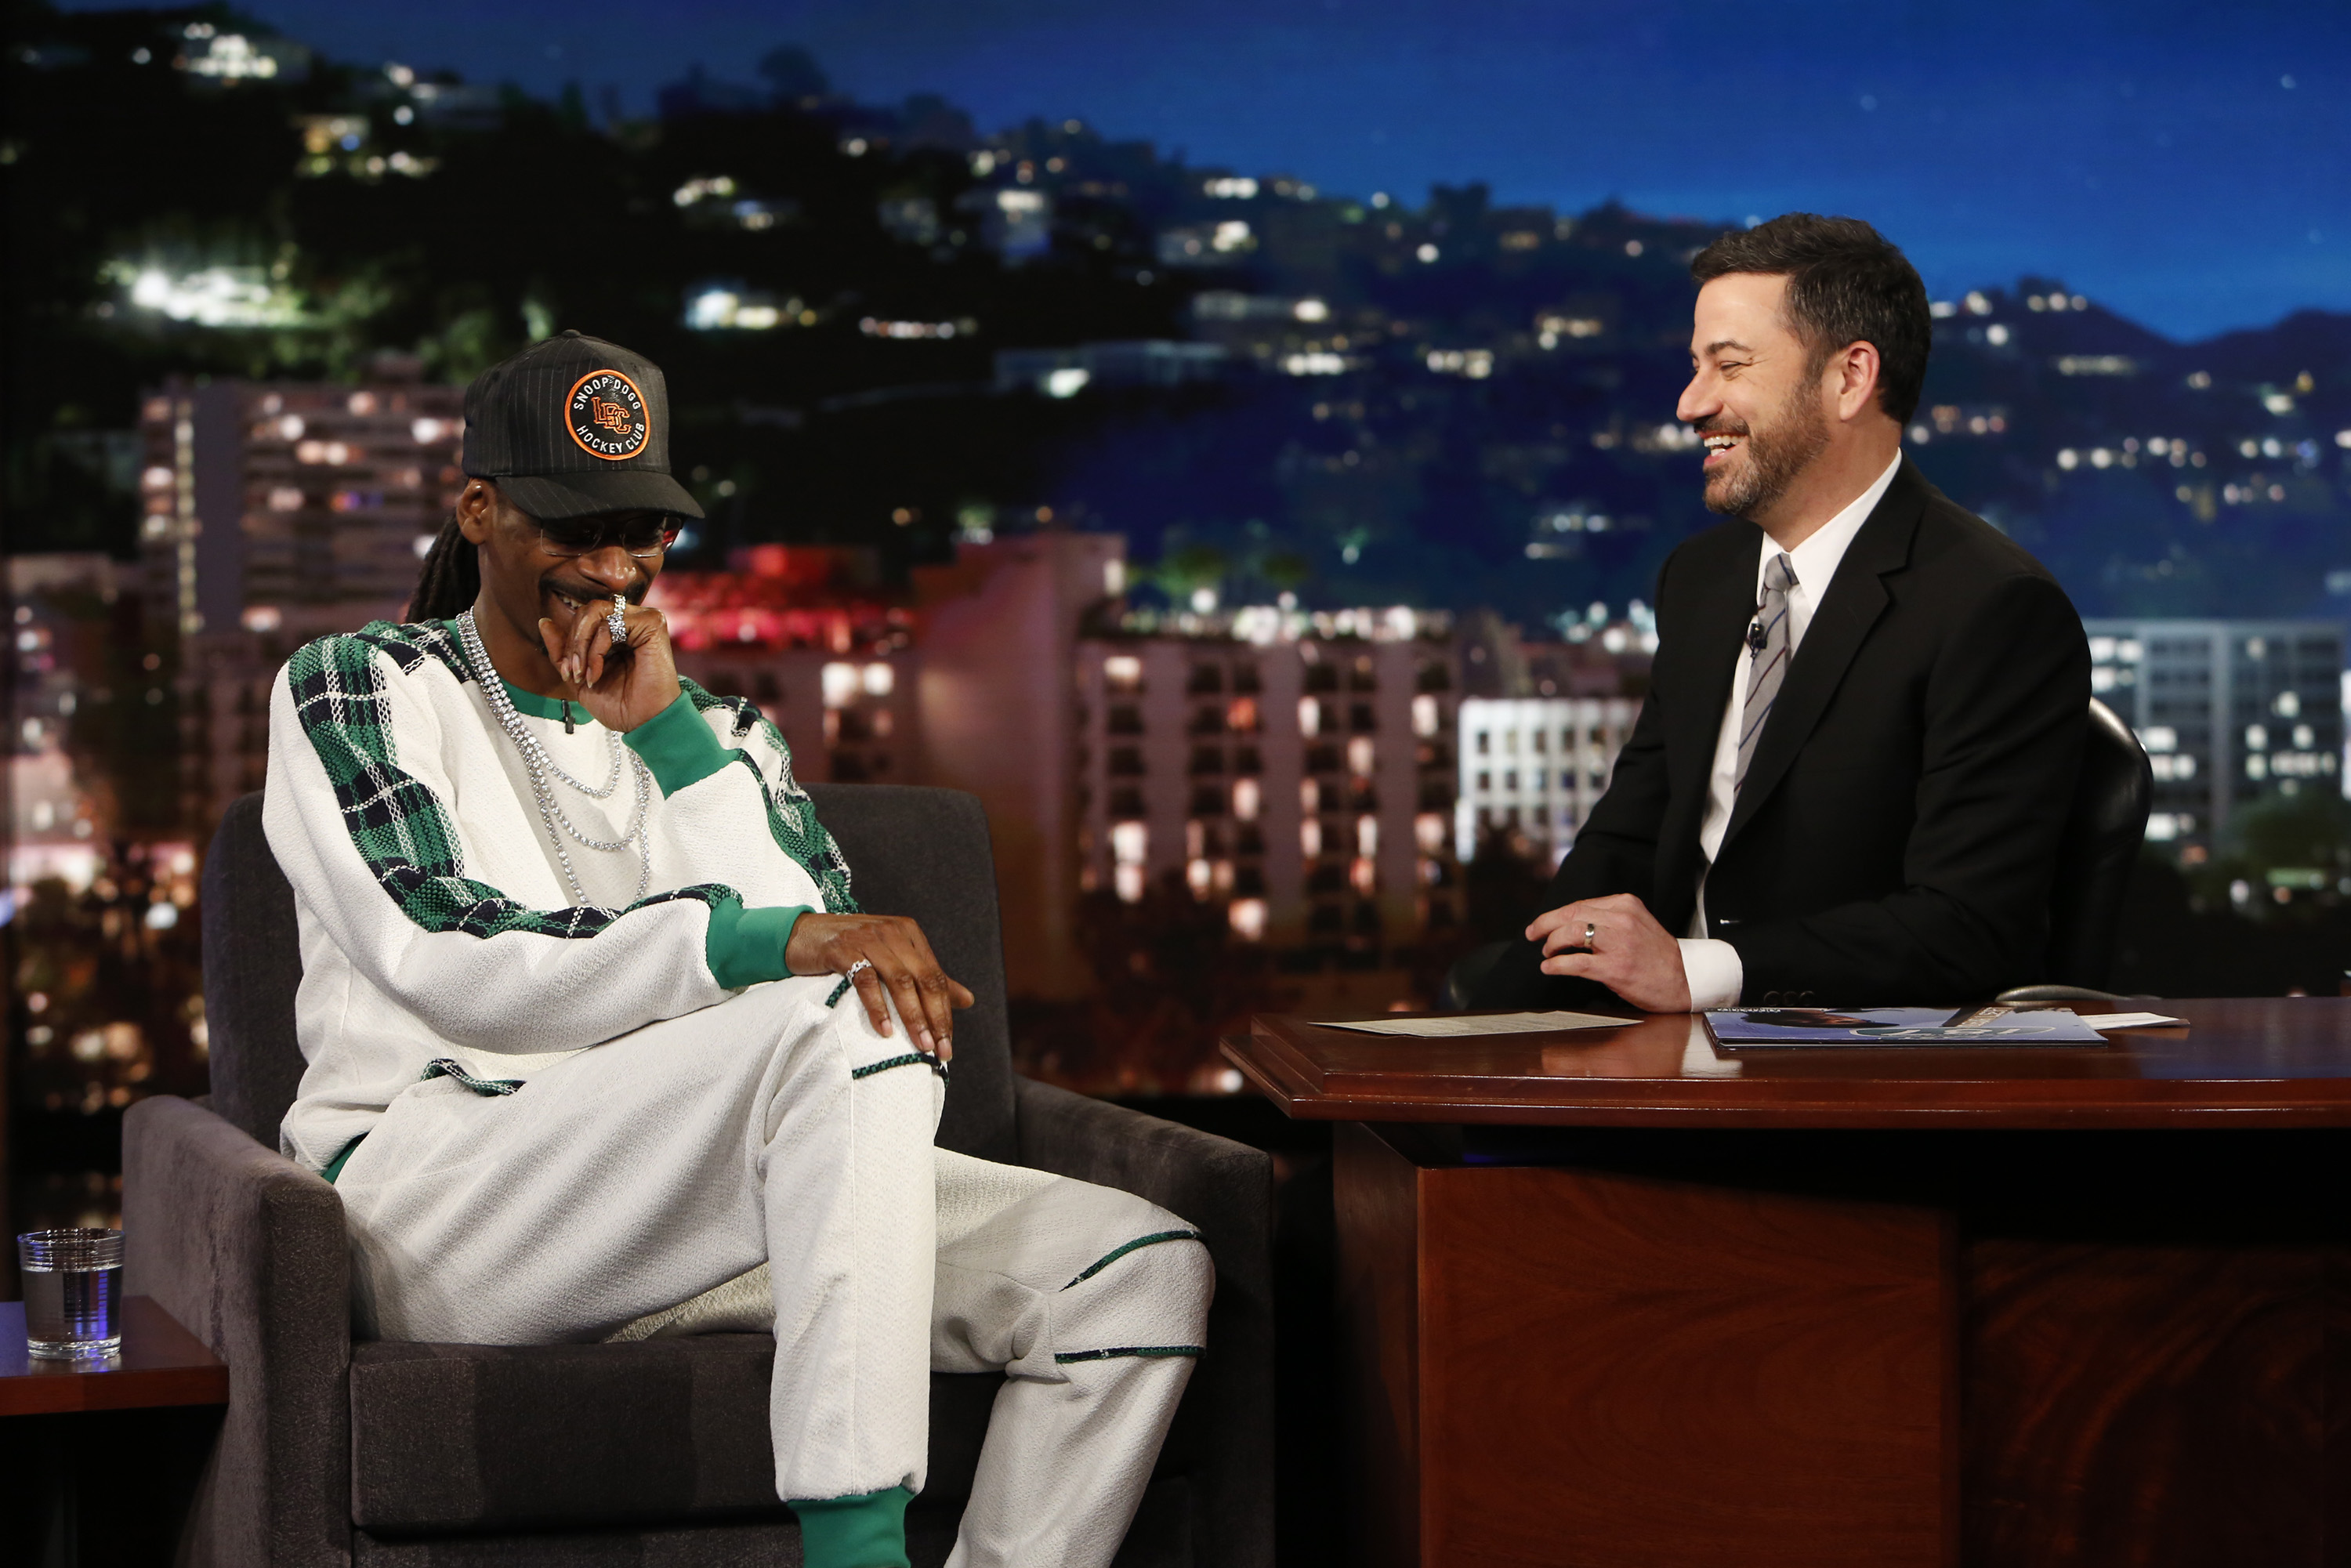 Jimmy Kimmel Live  brought on musical guest Snoop Dogg.